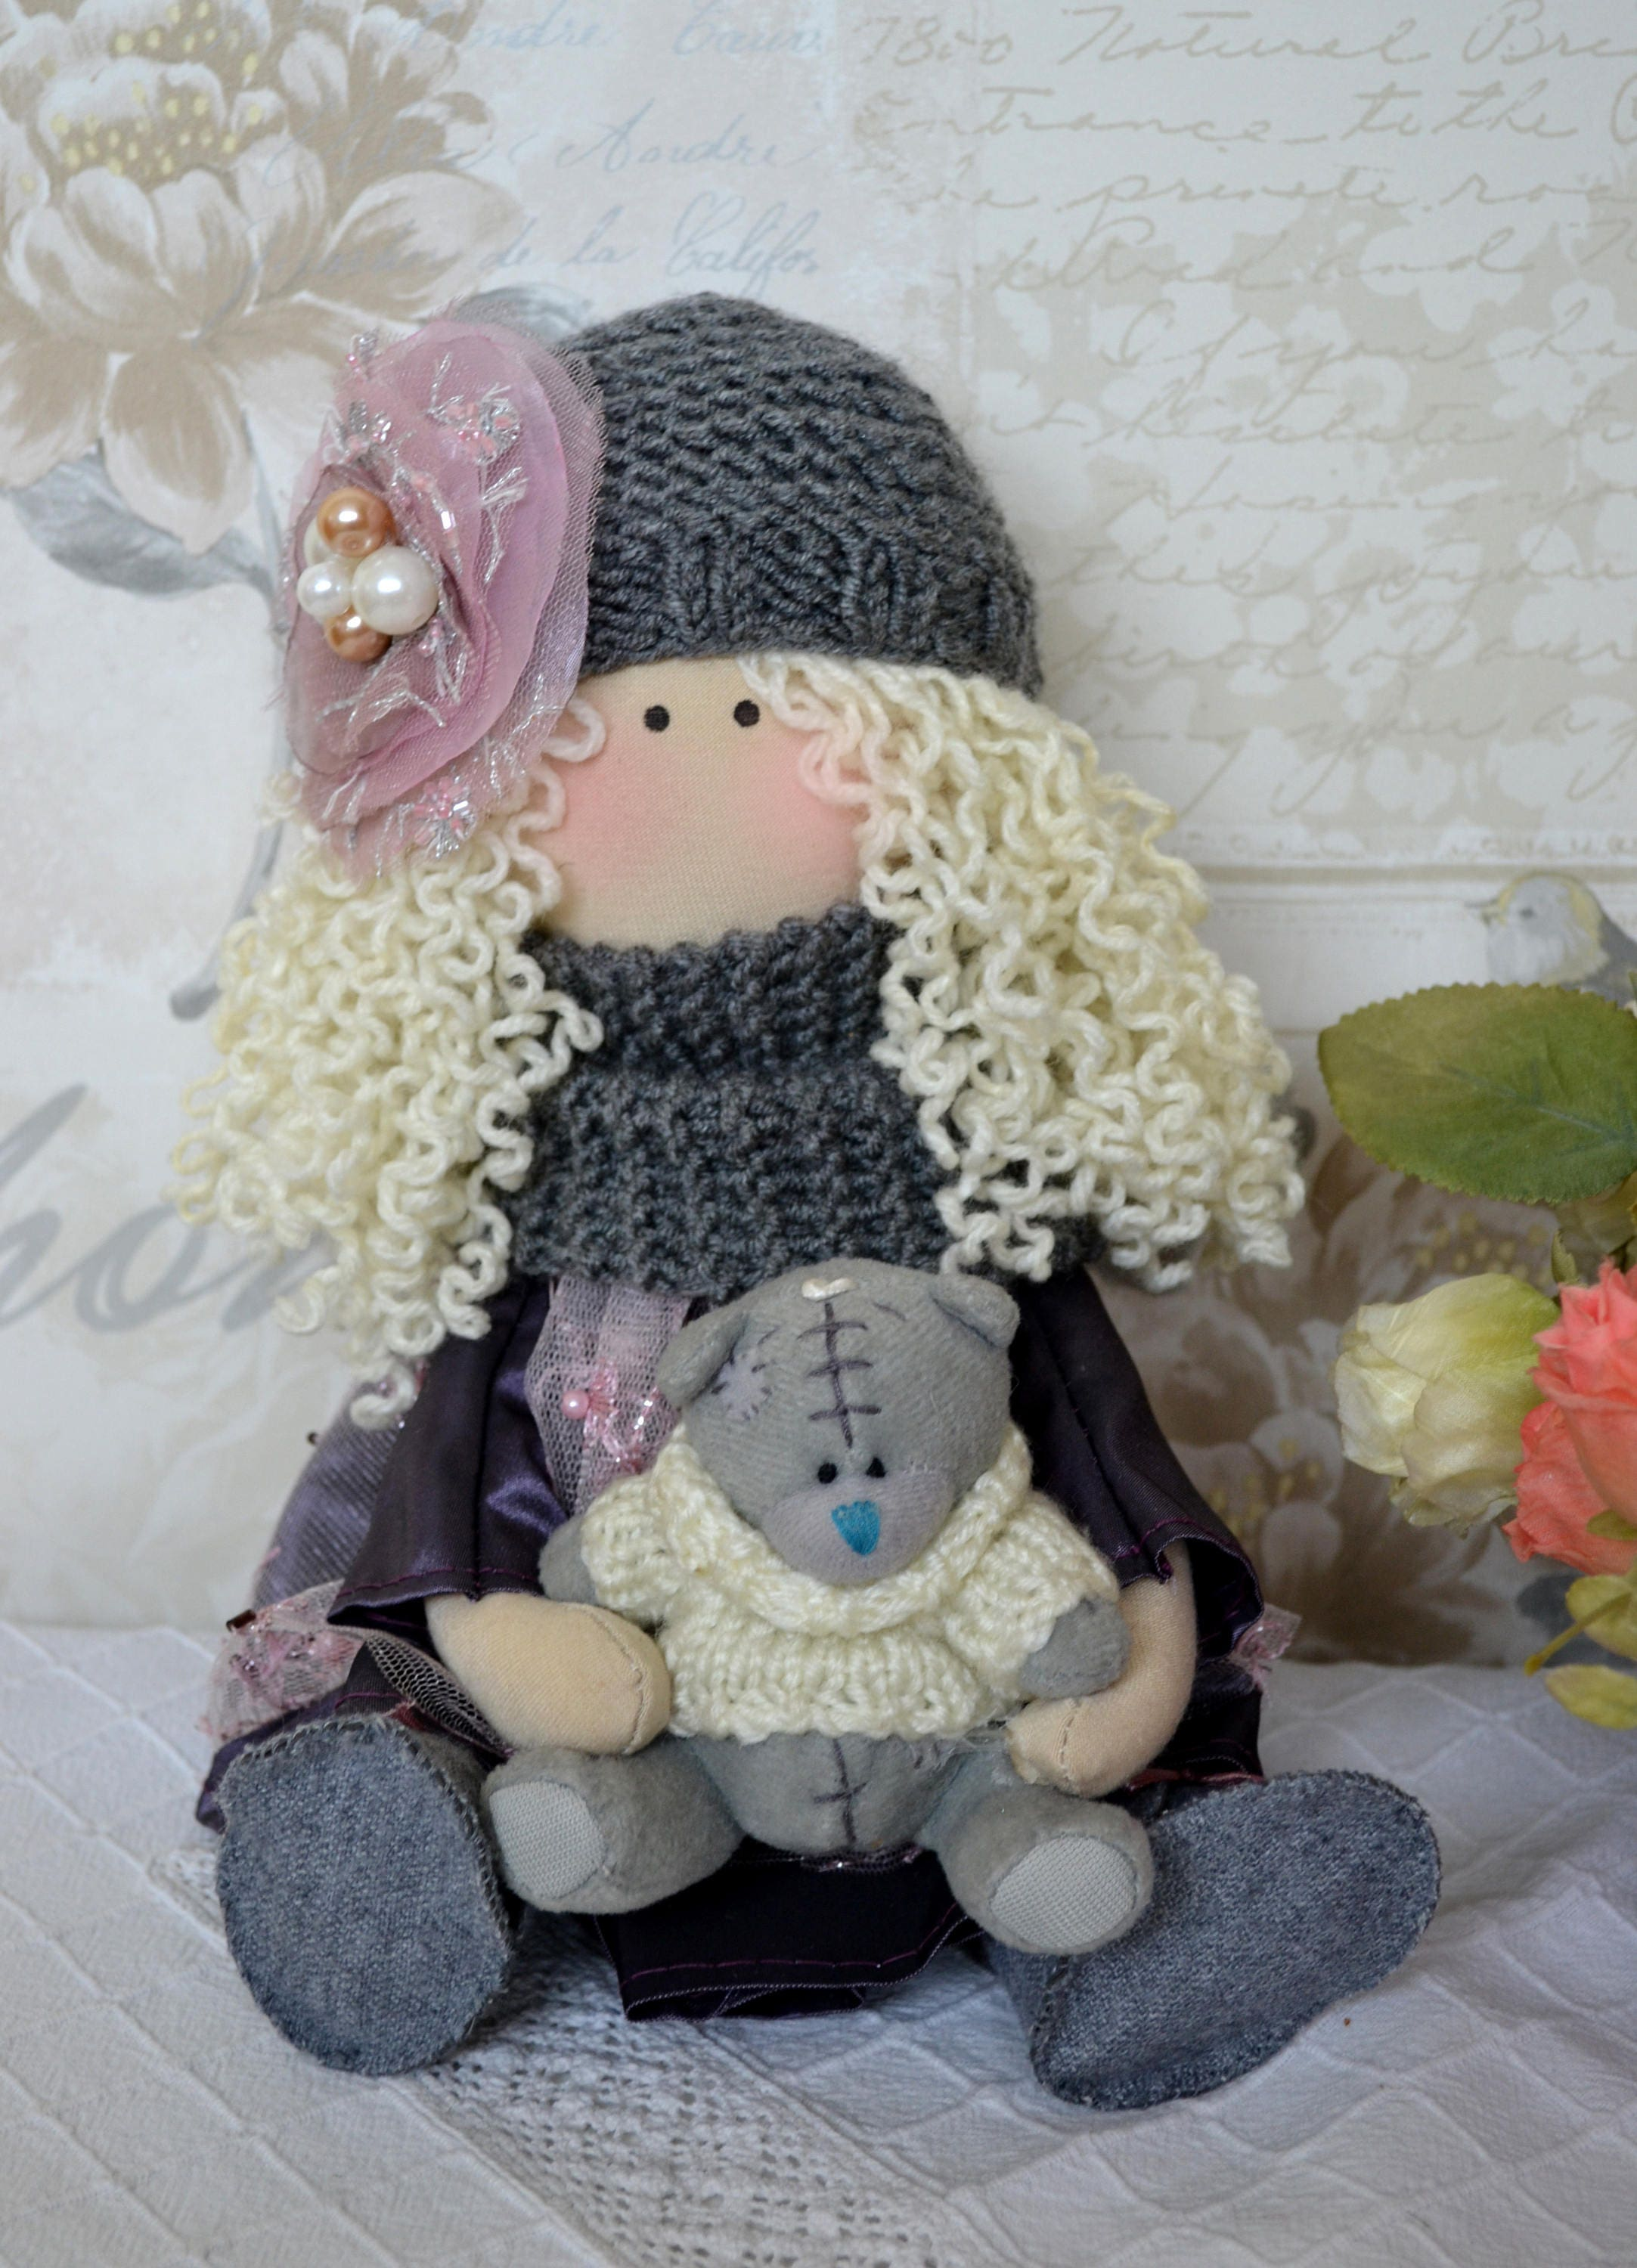 Holly Handmade collectable Lindy doll toy Russian dolls hand stitched personalise cloth craft